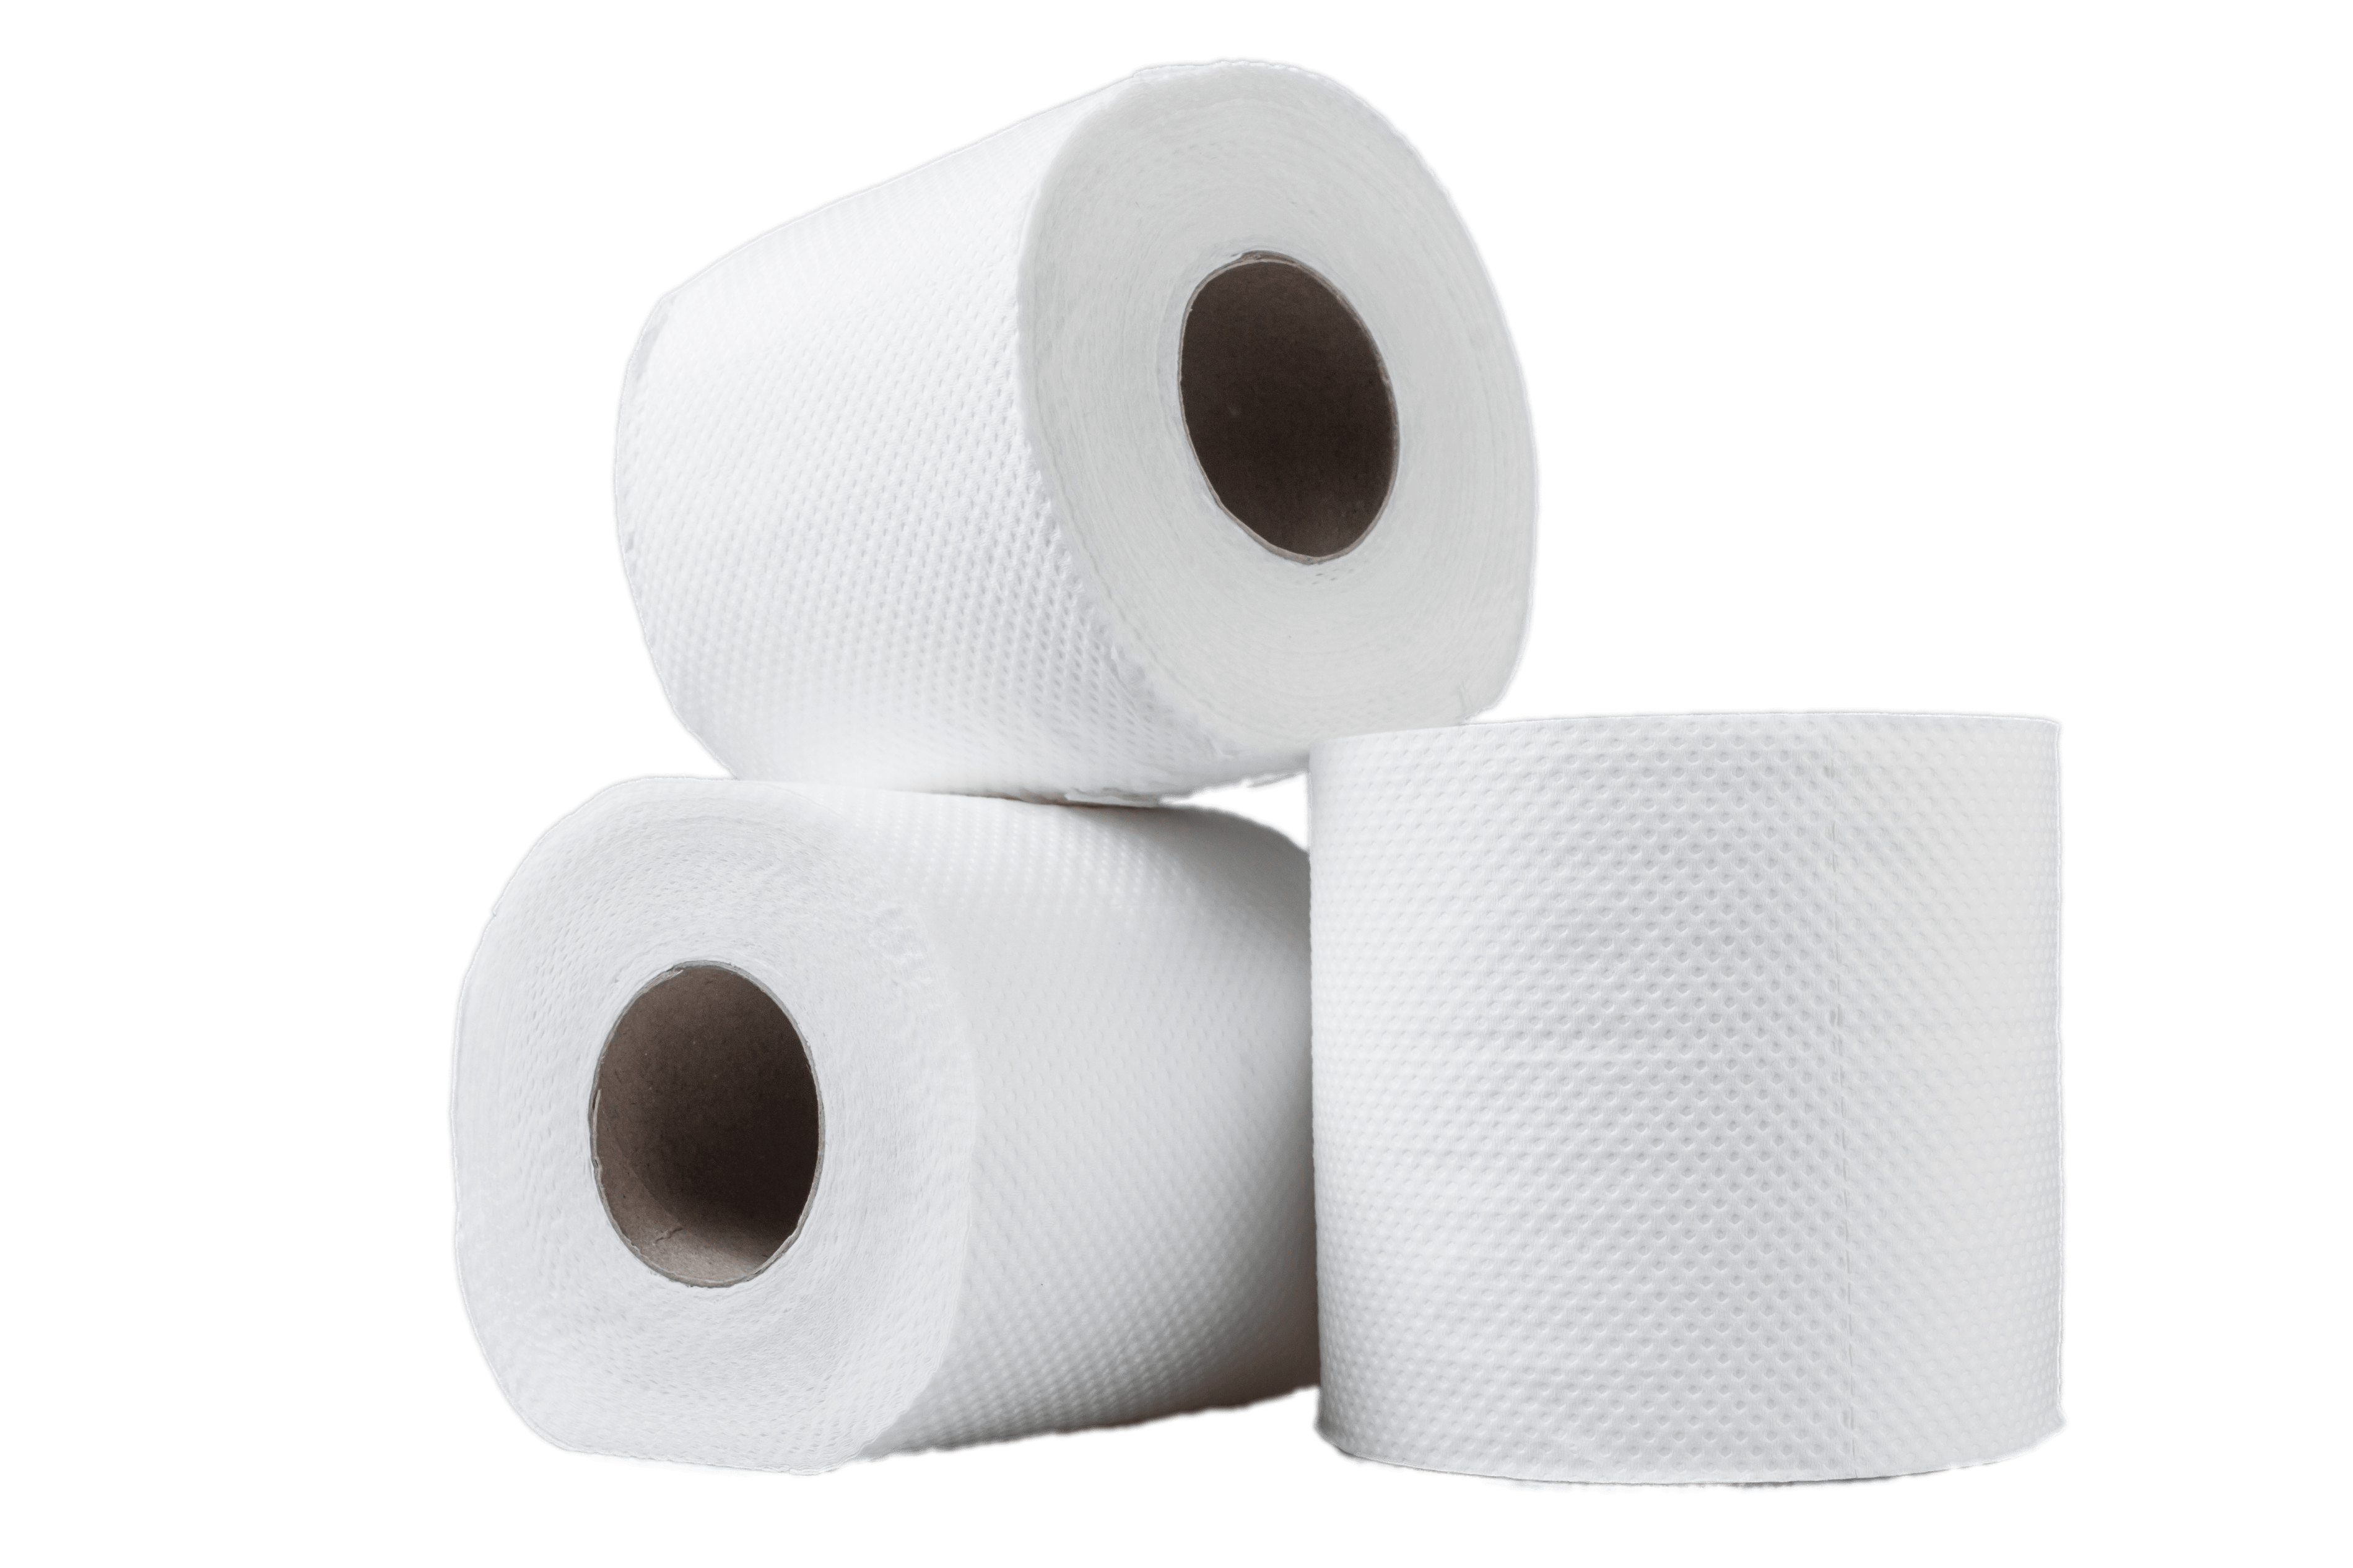 Paper products clipart vector freeuse stock Get Toilet paper Rolls PNG Transparent Clipart Image #6 - Free ... vector freeuse stock